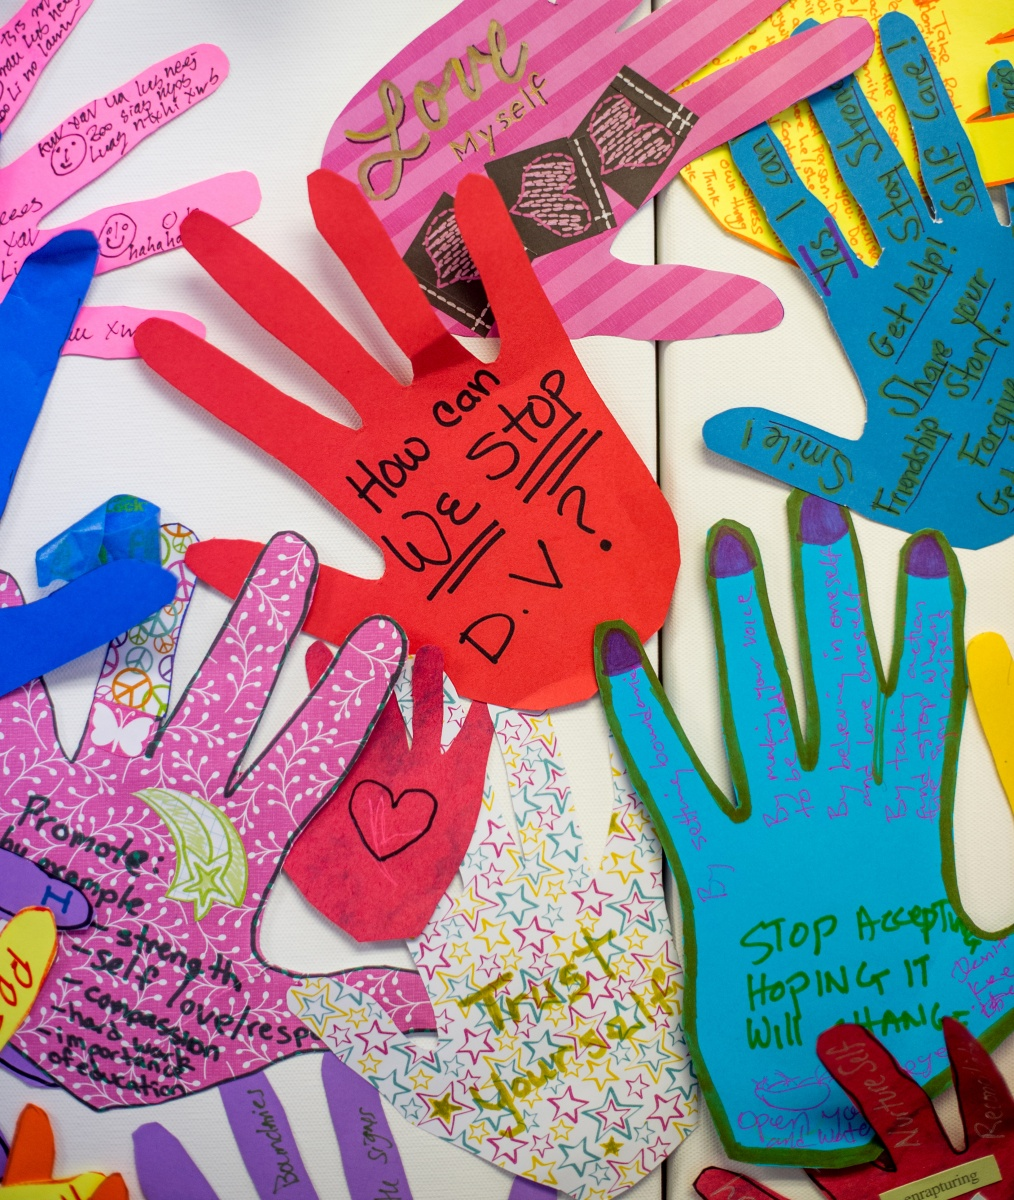 Artwork by domestic violence survivors to promote healing